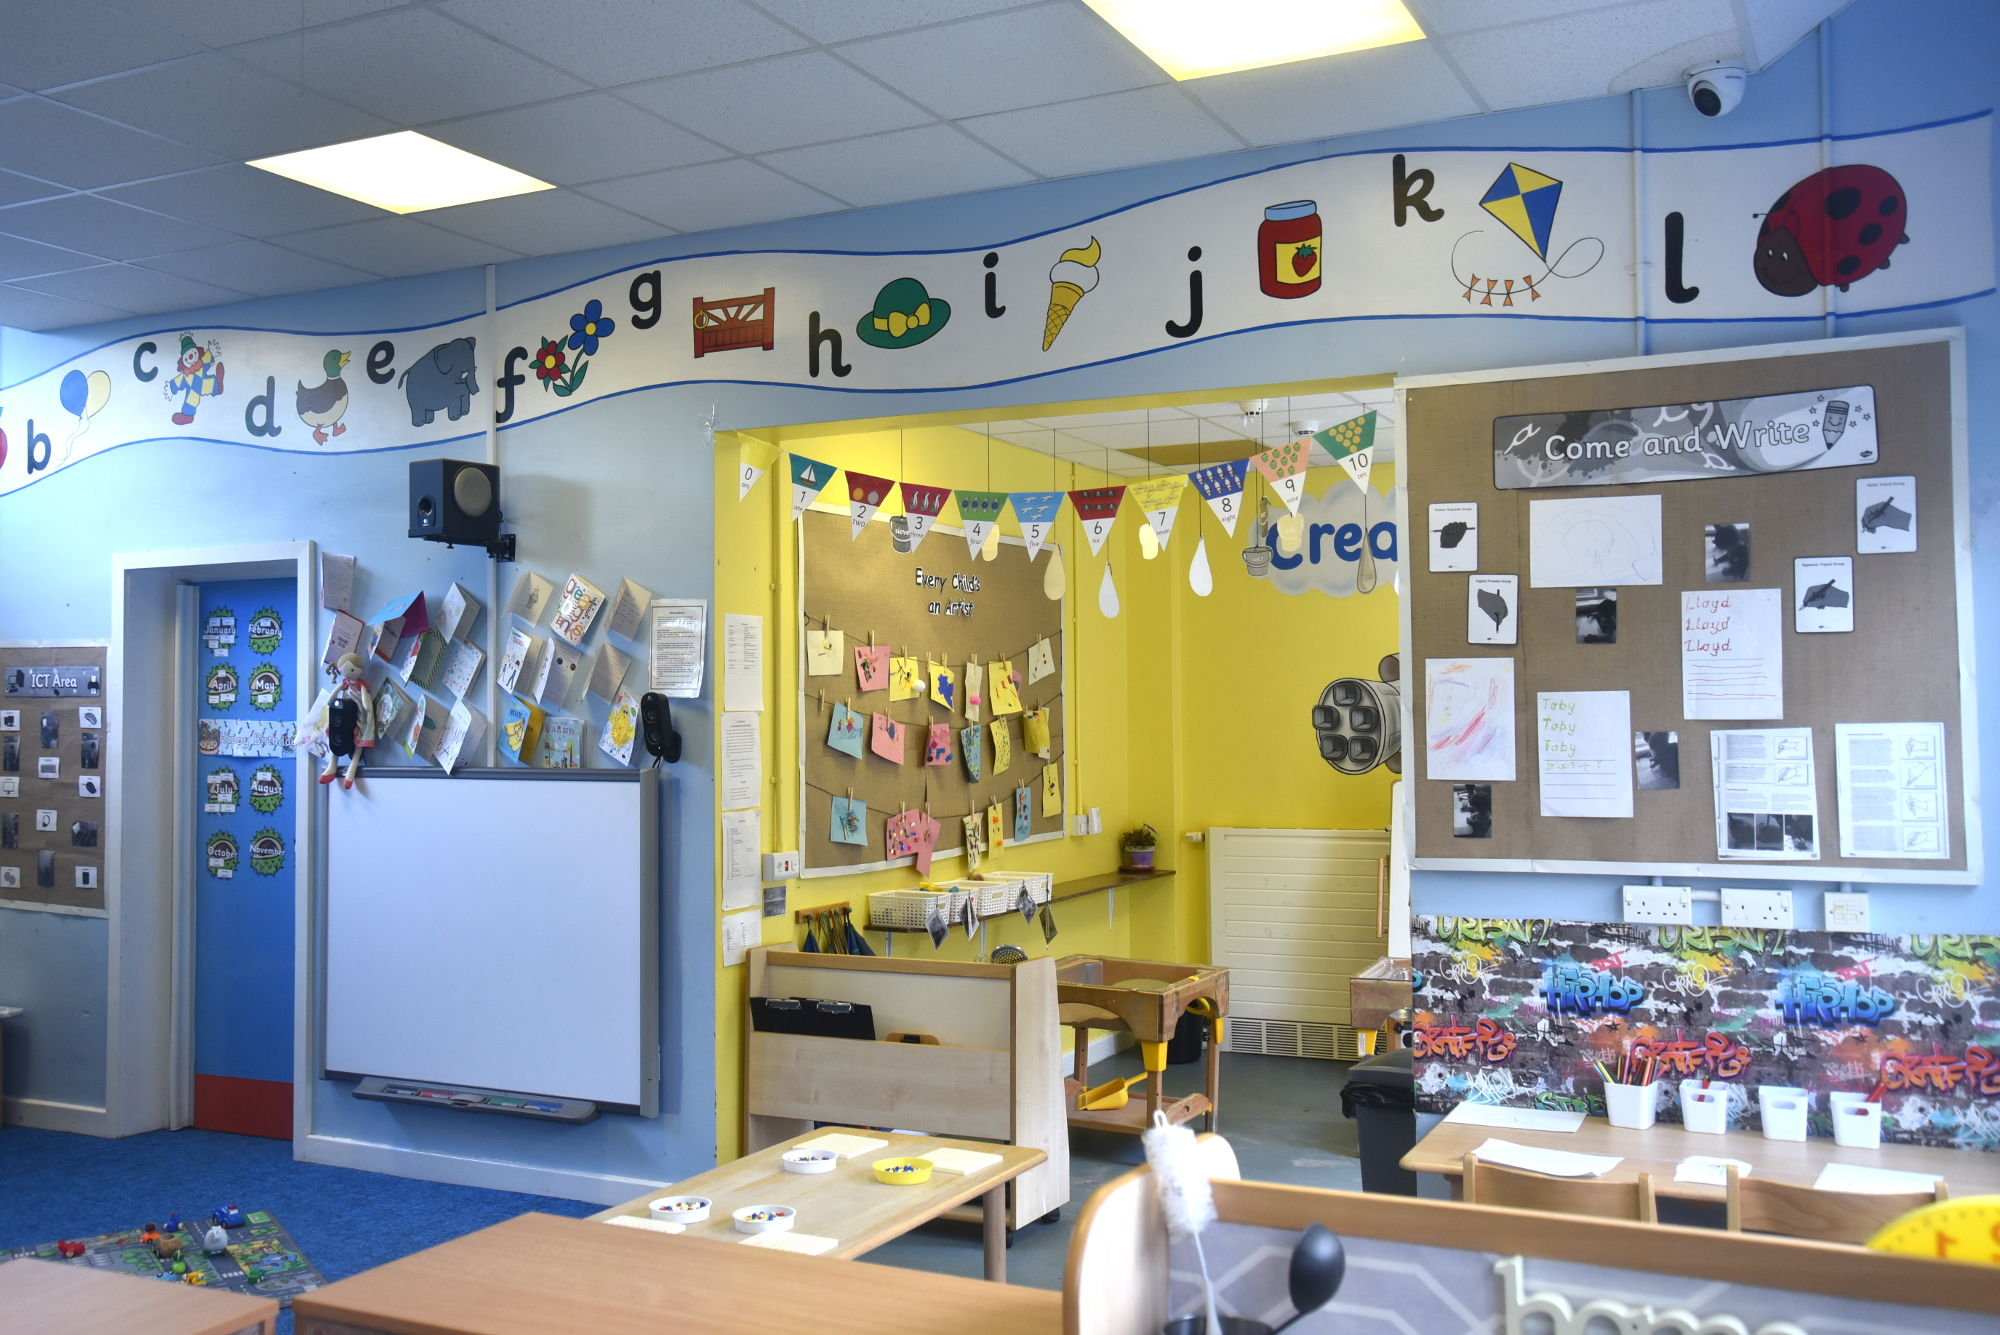 The preschool room at Stainsby